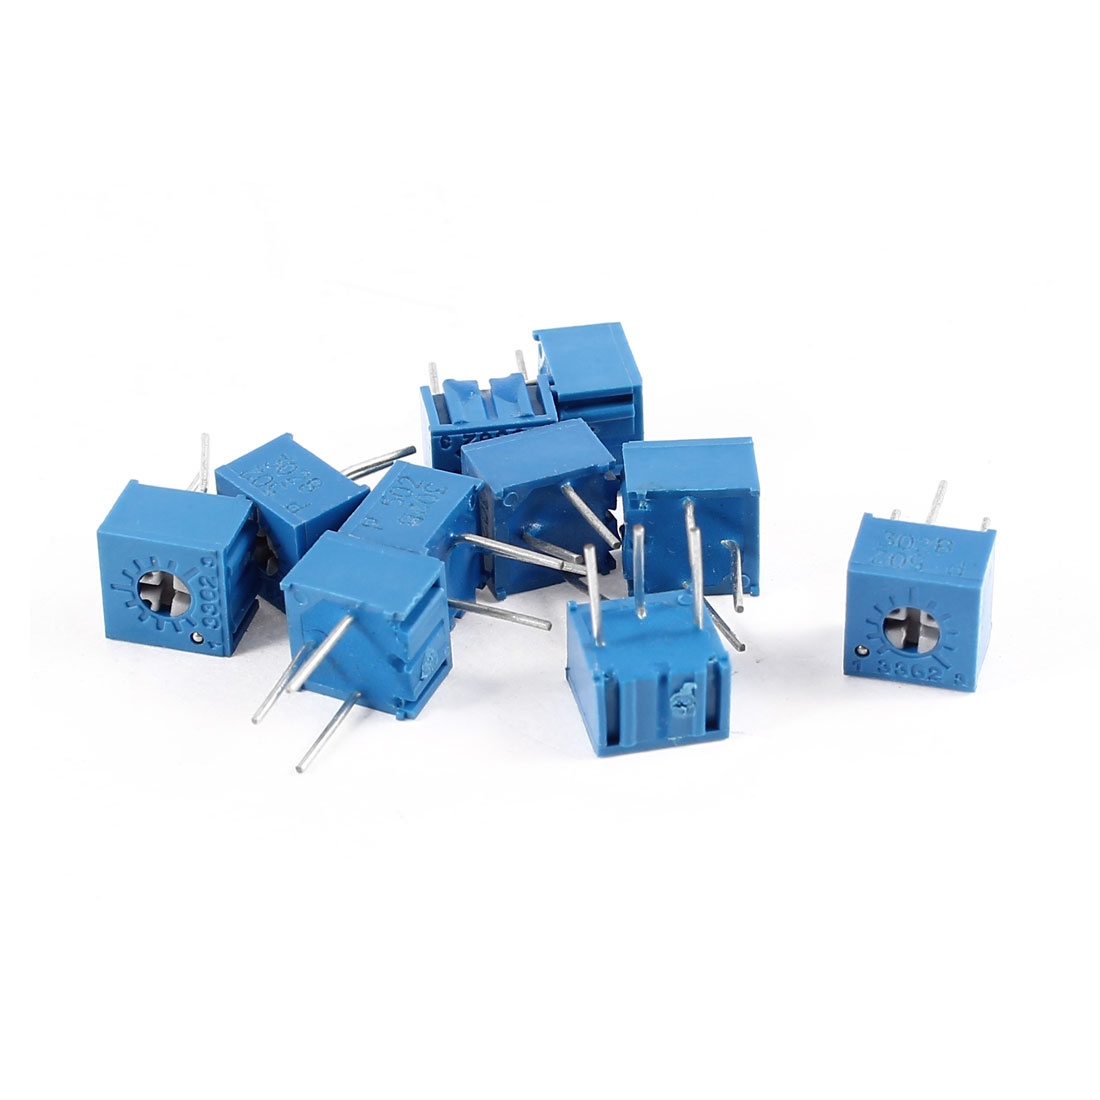 10Pcs 3362W-502 5K ohm 3 Pins High Precision Adjustable Resistor Trim Pot Potentiometer Trimmer